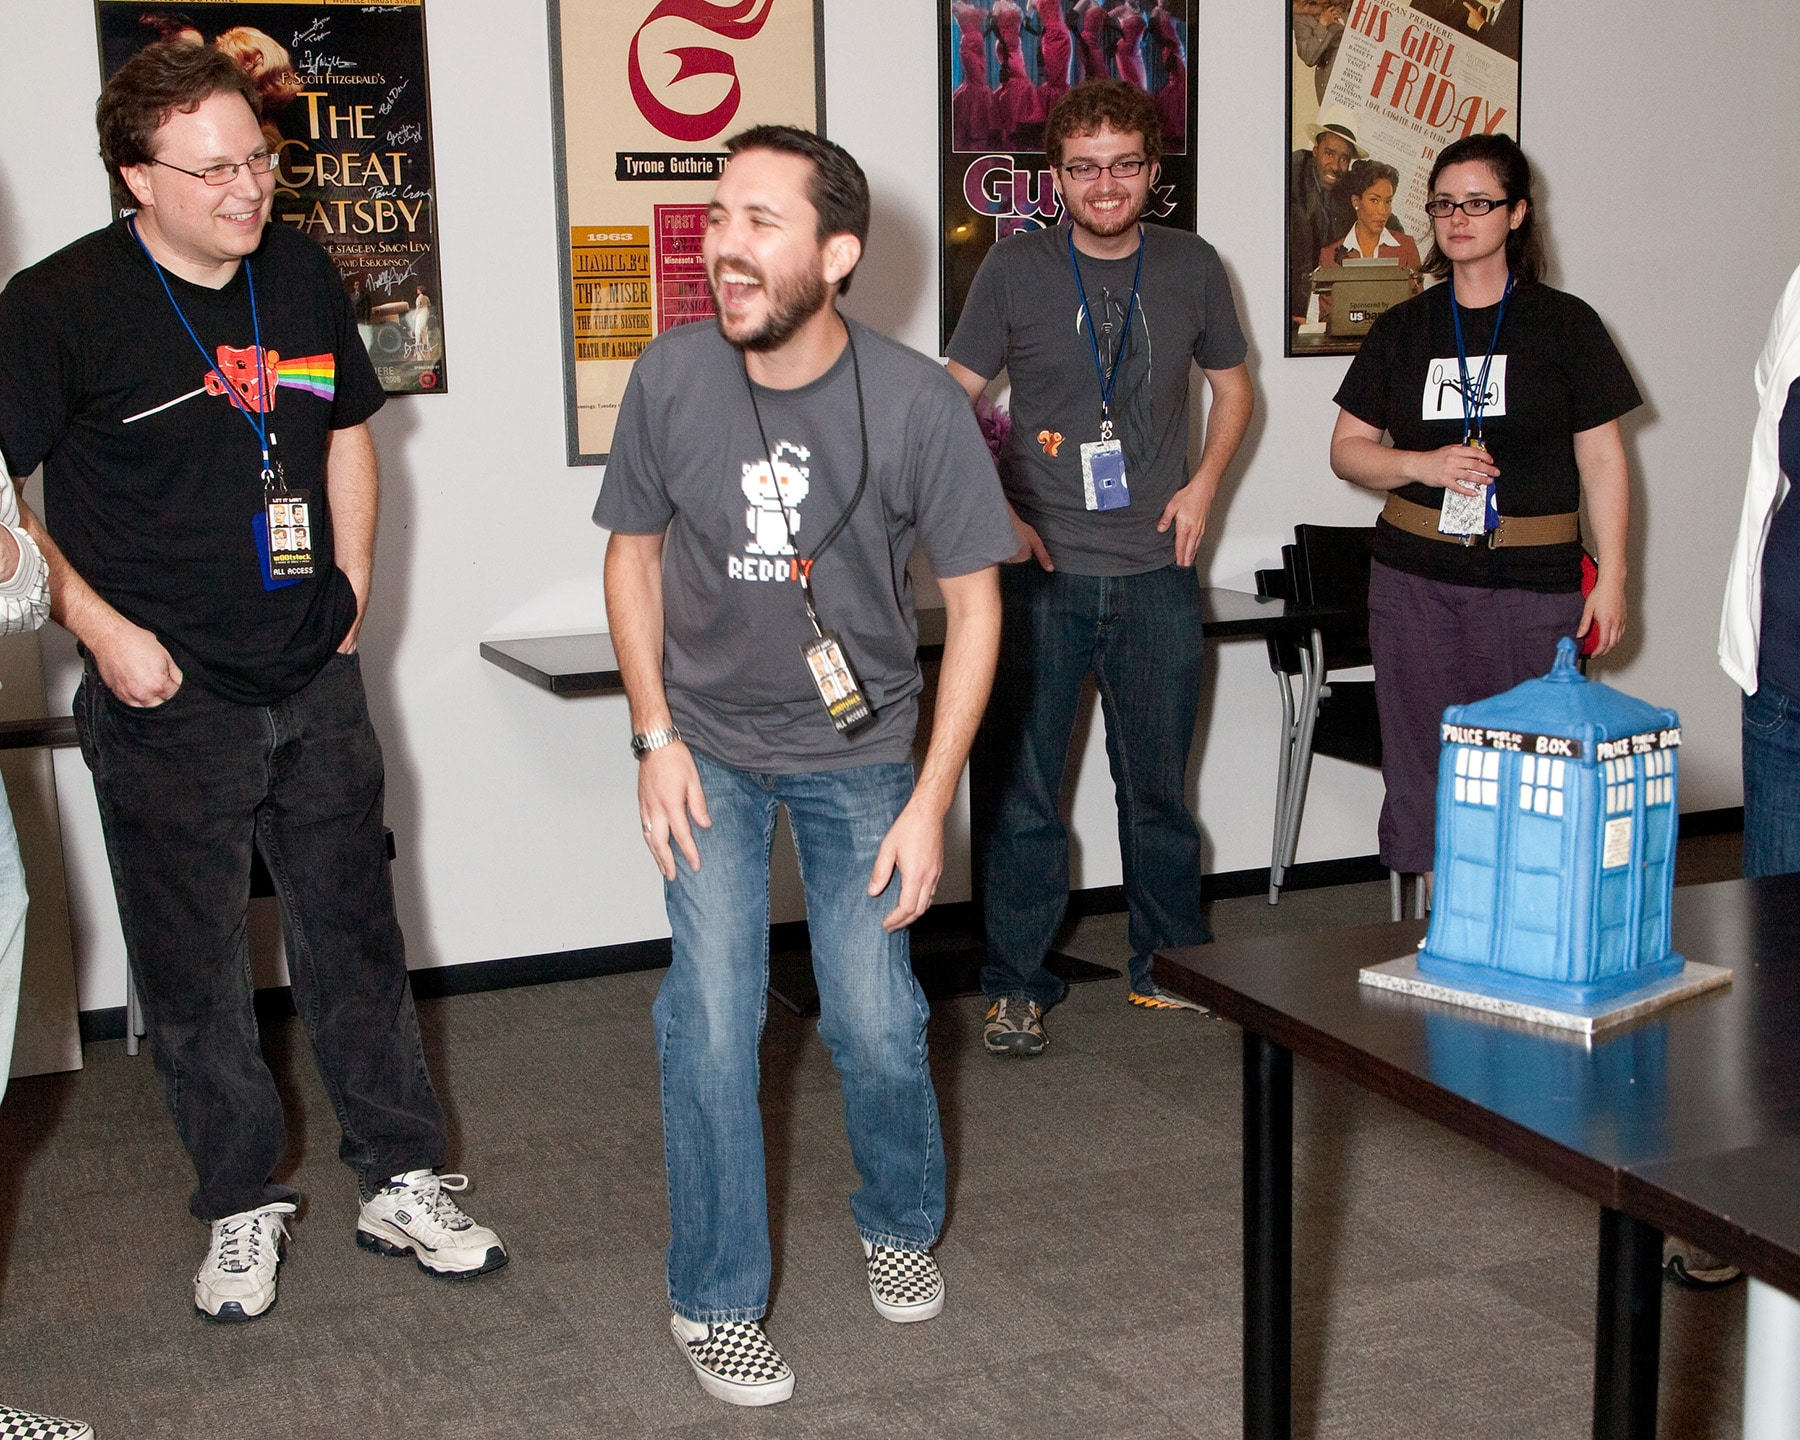 Wil Wheaton, hands on his legs, laughing as he sees the TARDIS cake.